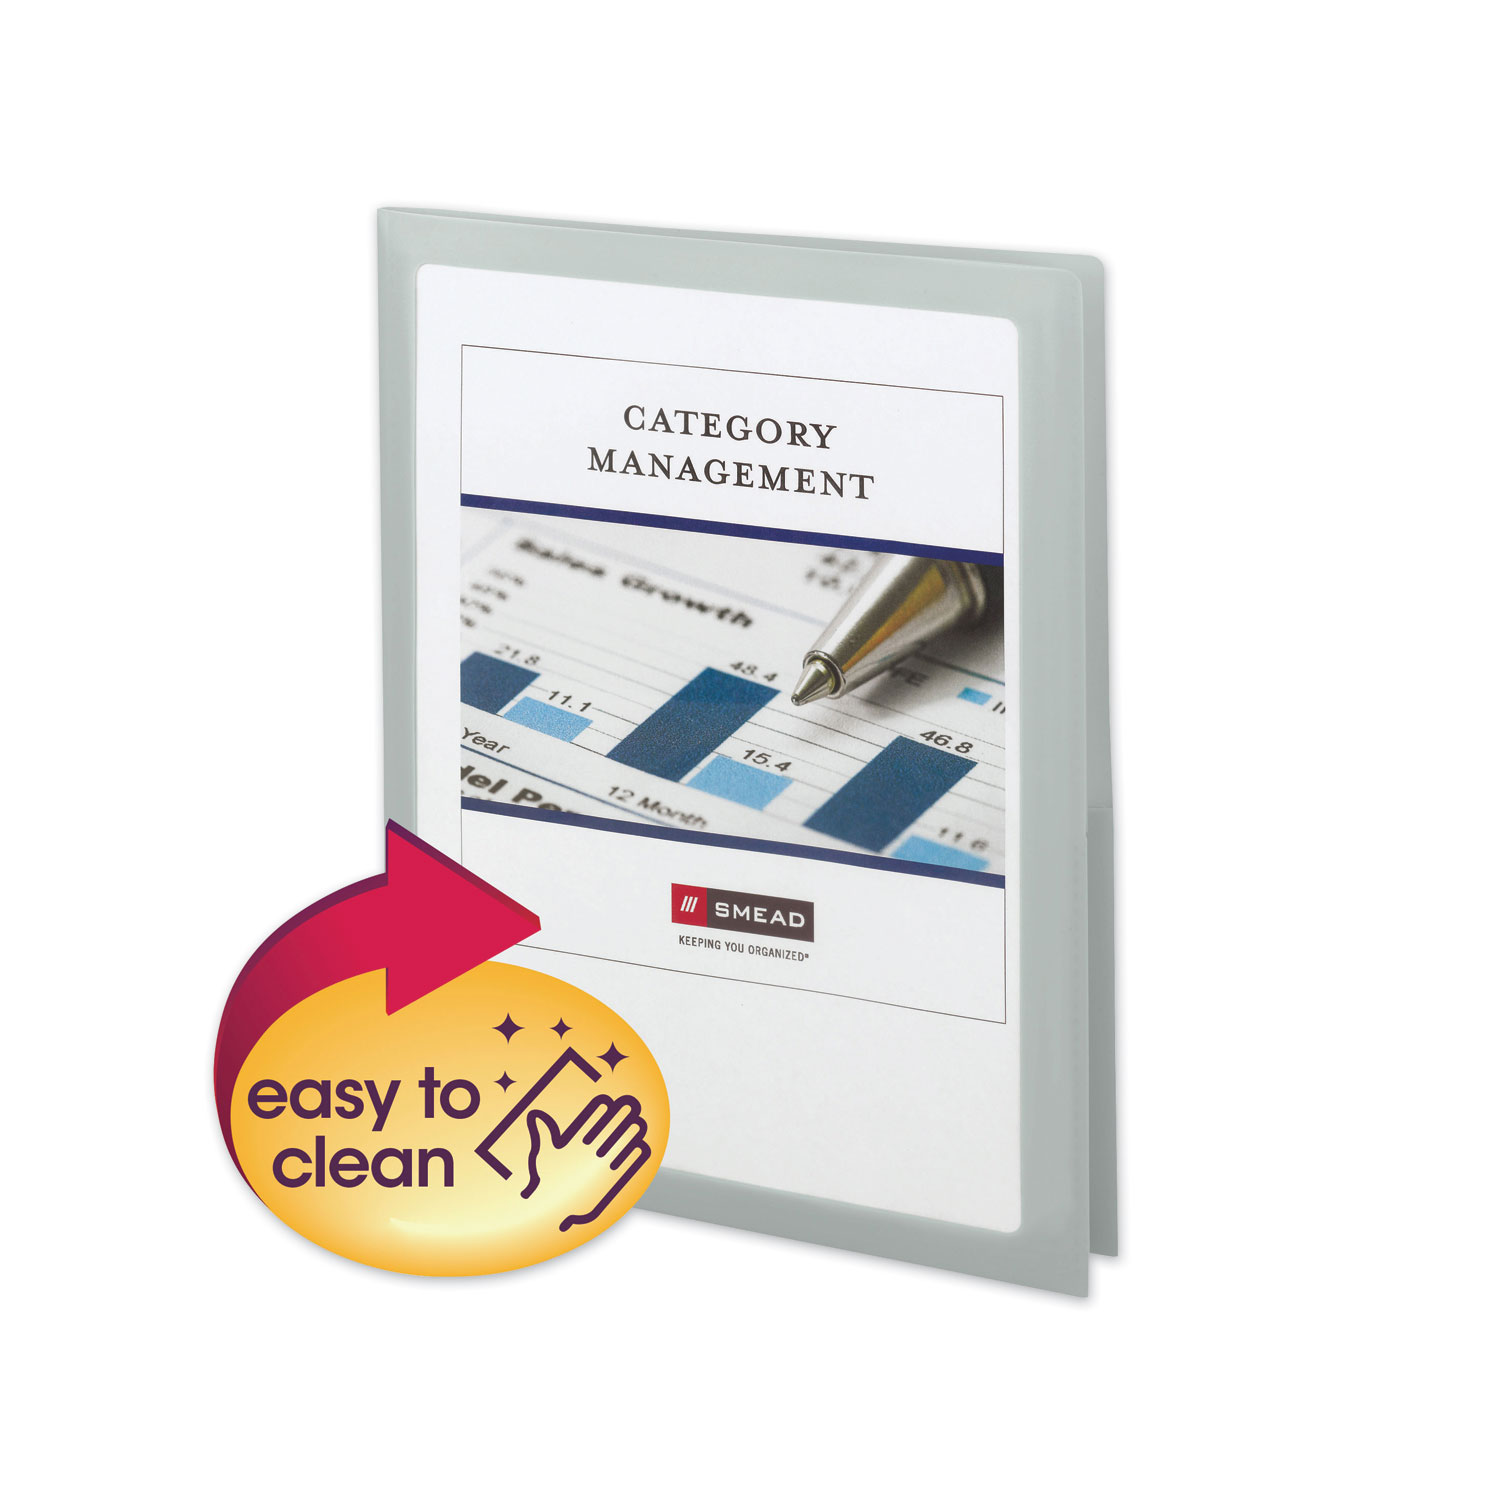 Frame View Poly Two-Pocket Folder, 11 x 8 1/2, Clear/Oyster, 5/Pack